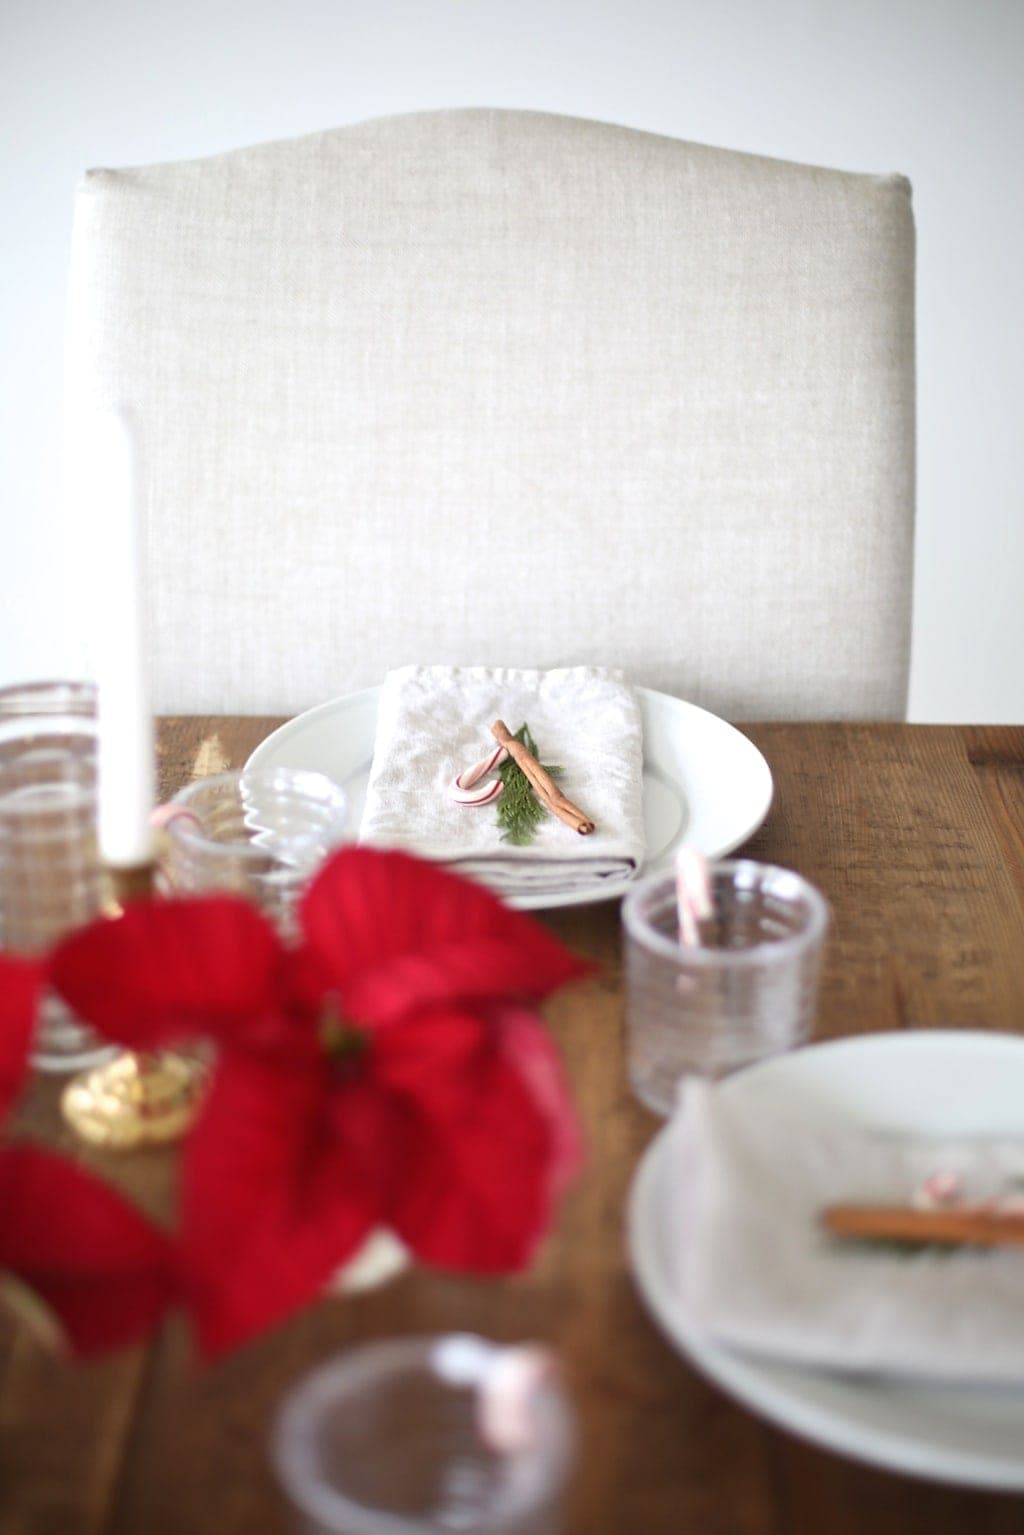 A casual Christmas place setting - get the effortless entertaining details